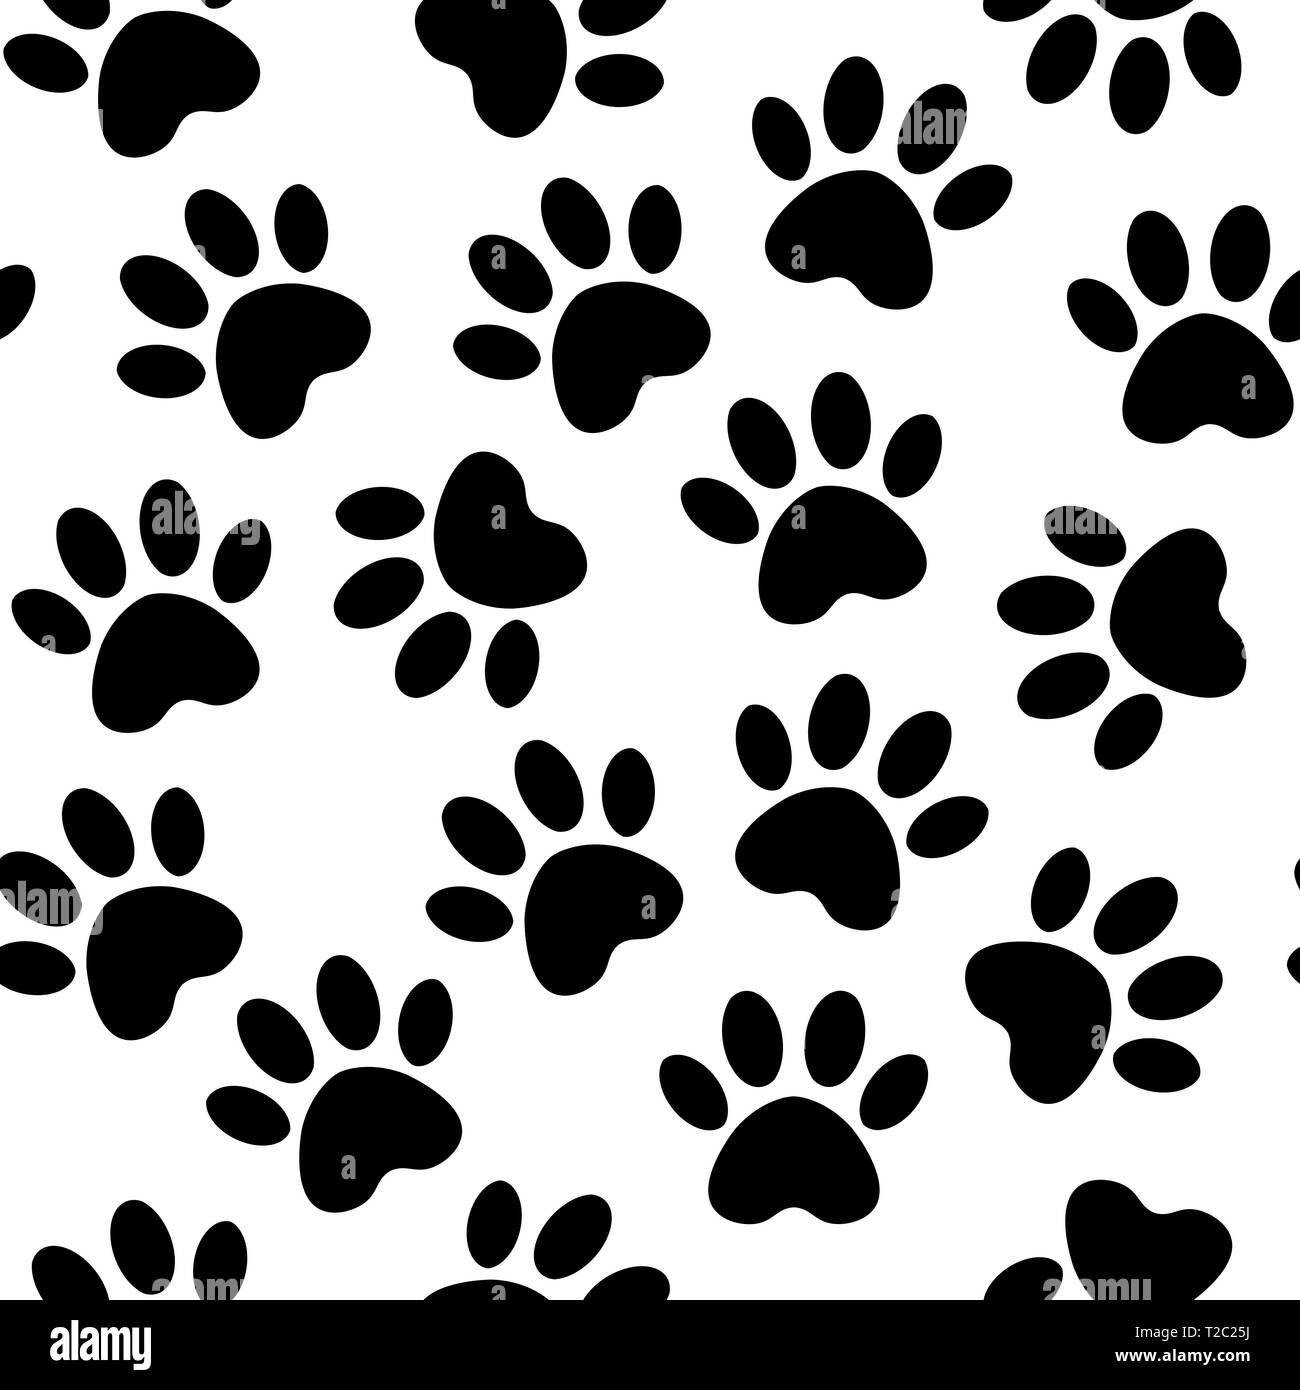 backdrop with silhouettes of cat or dog footprint. Vector illustration animal paw track pattern. Paw black print seamless. - Stock Image